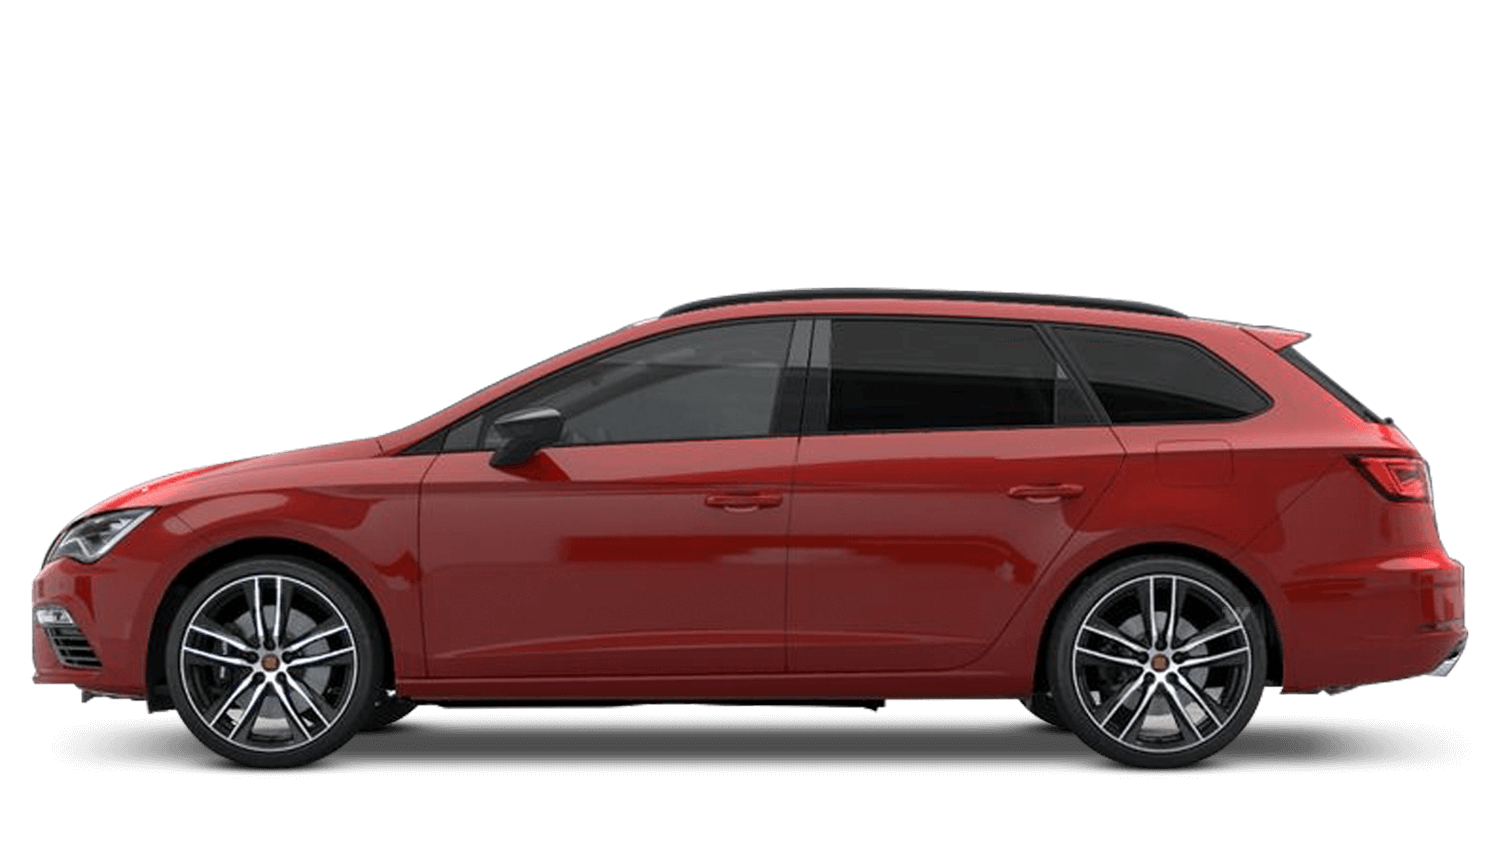 Emocion Red (Non-Metallic) Leon Estate CUPRA